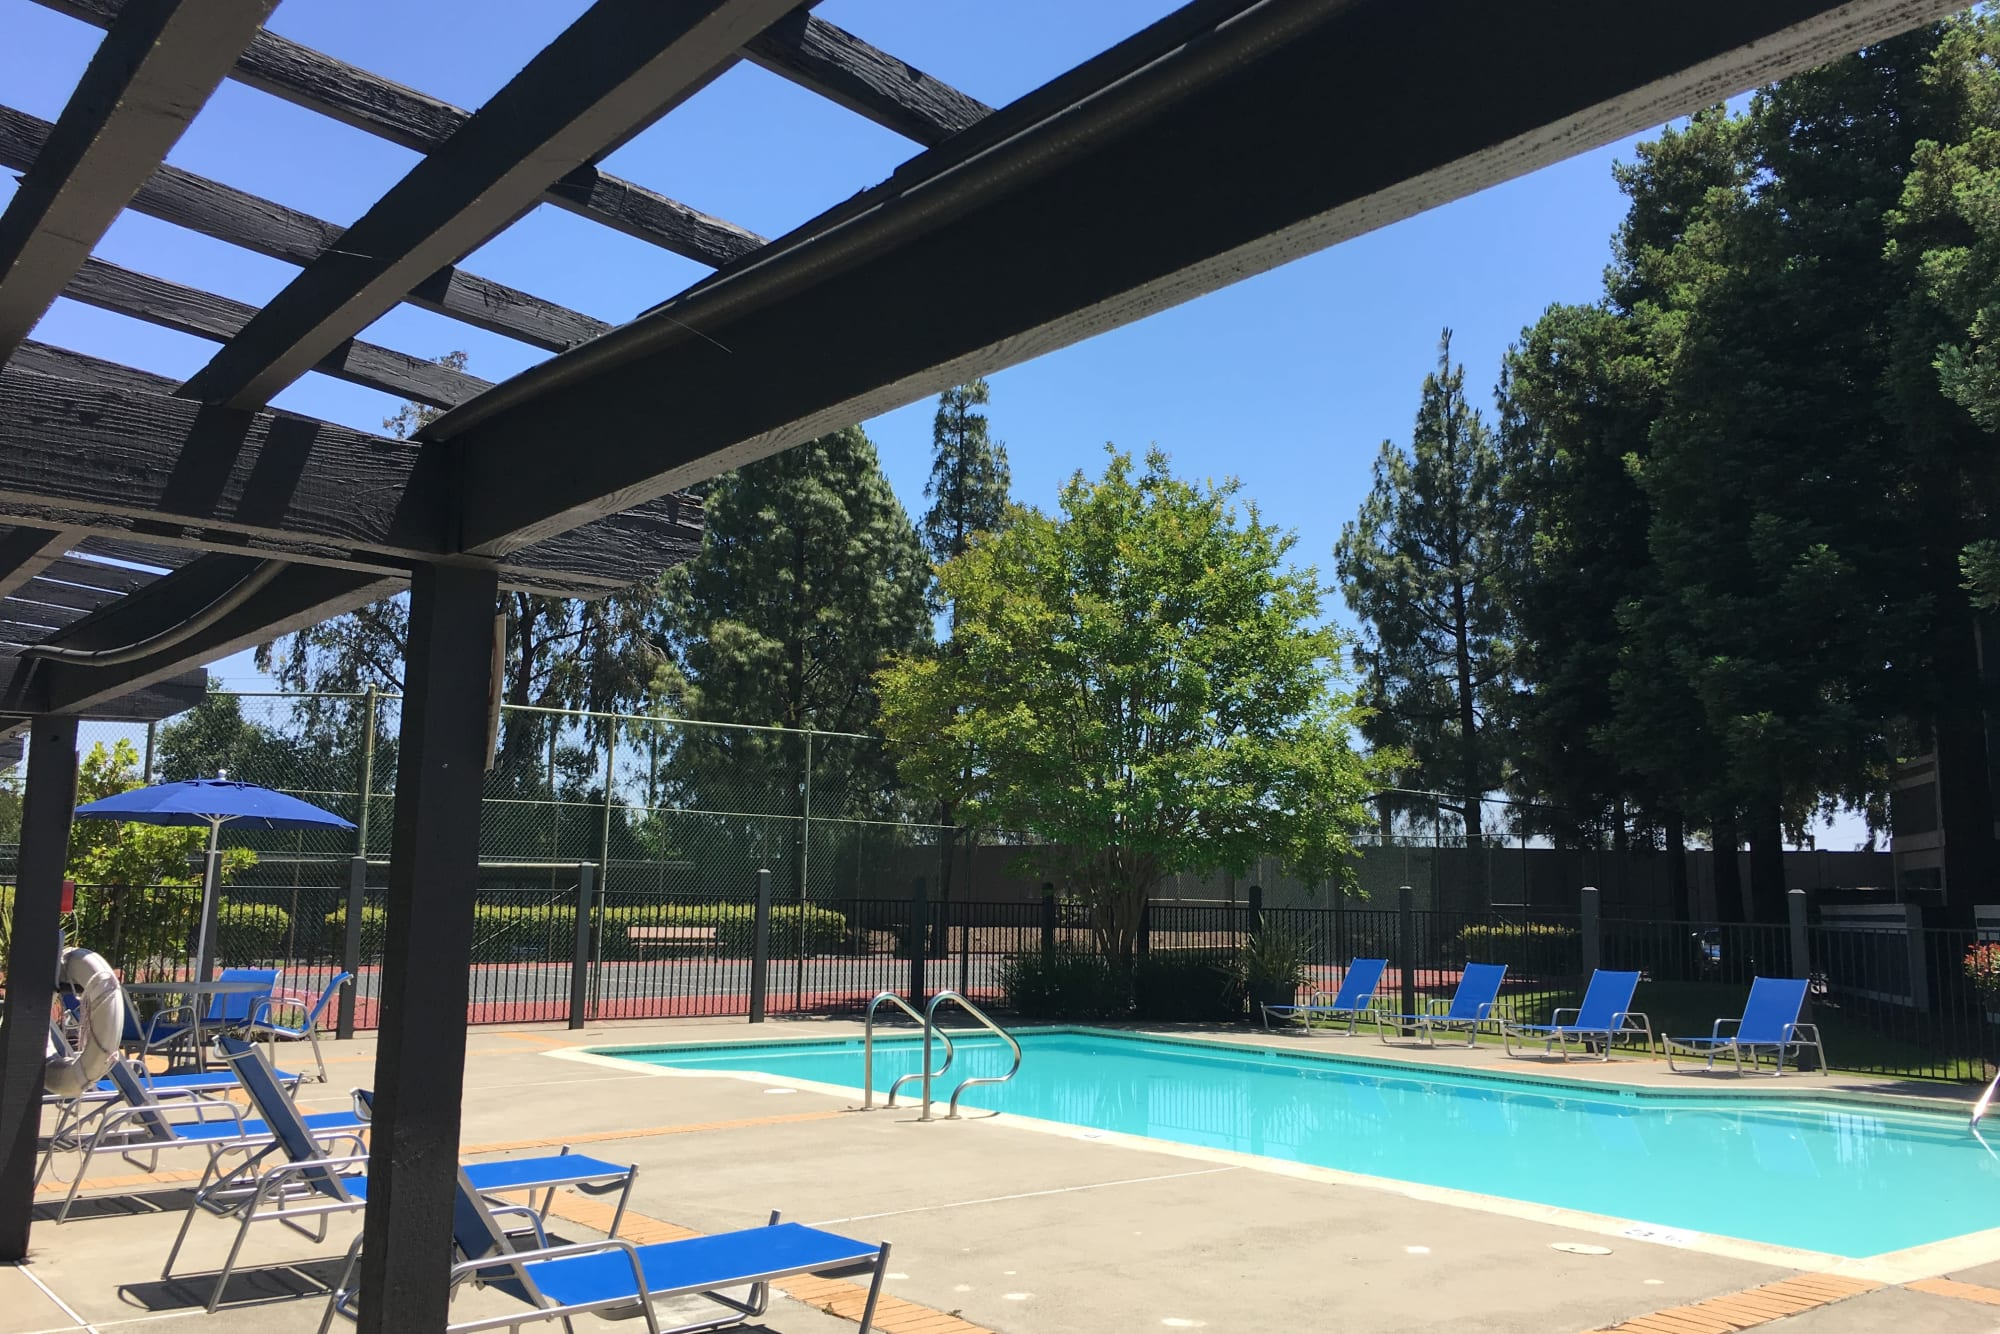 The poolside lounge area at Avery Park Apartments in Fairfield, California